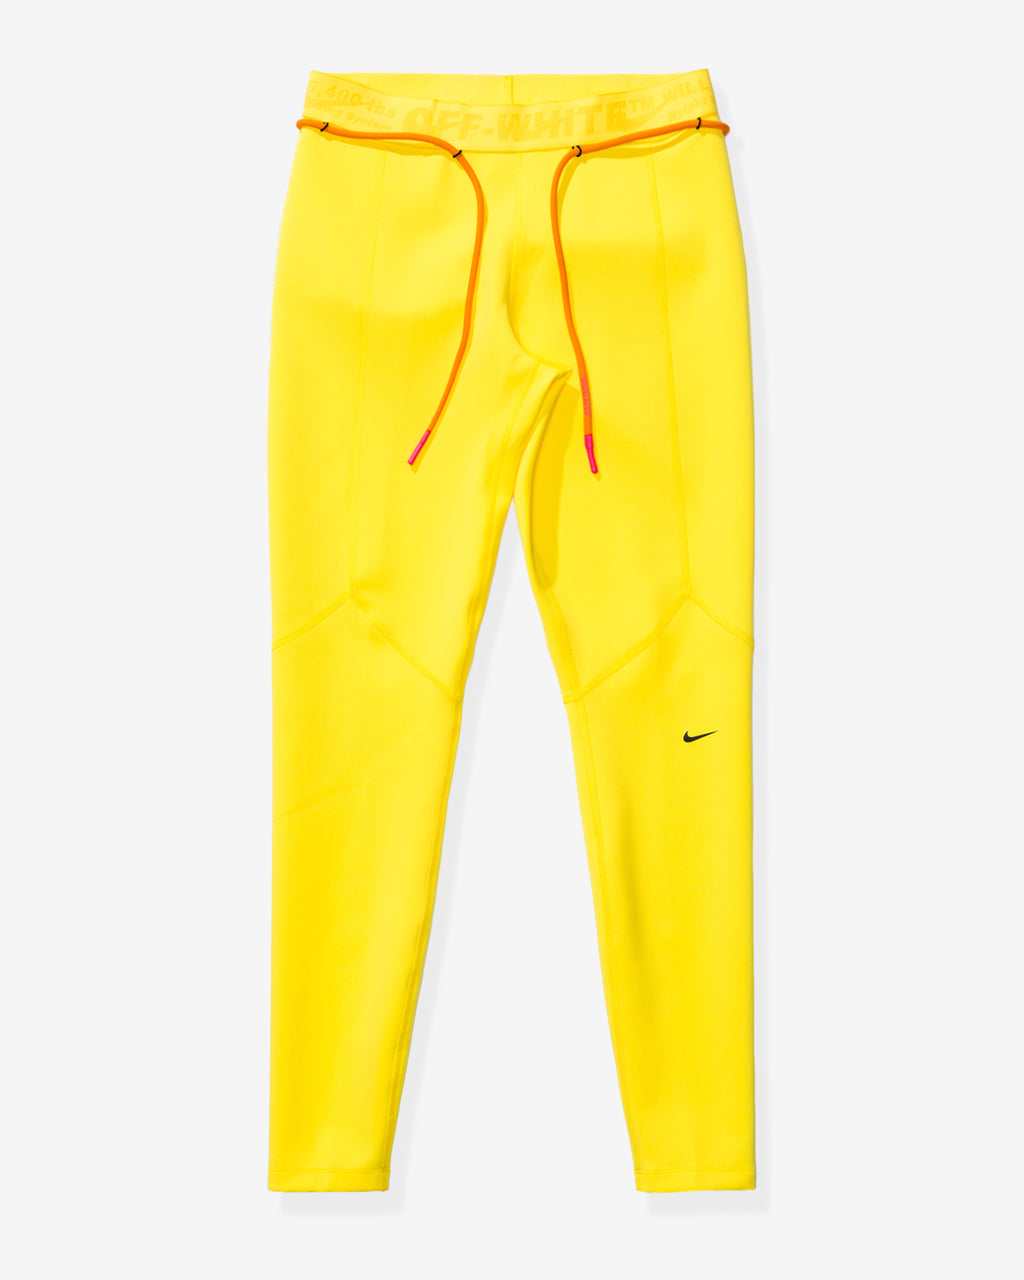 NIKE X OFF-WHITE WOMEN'S NRG TIGHT UTILITY - OPTIYELLOW